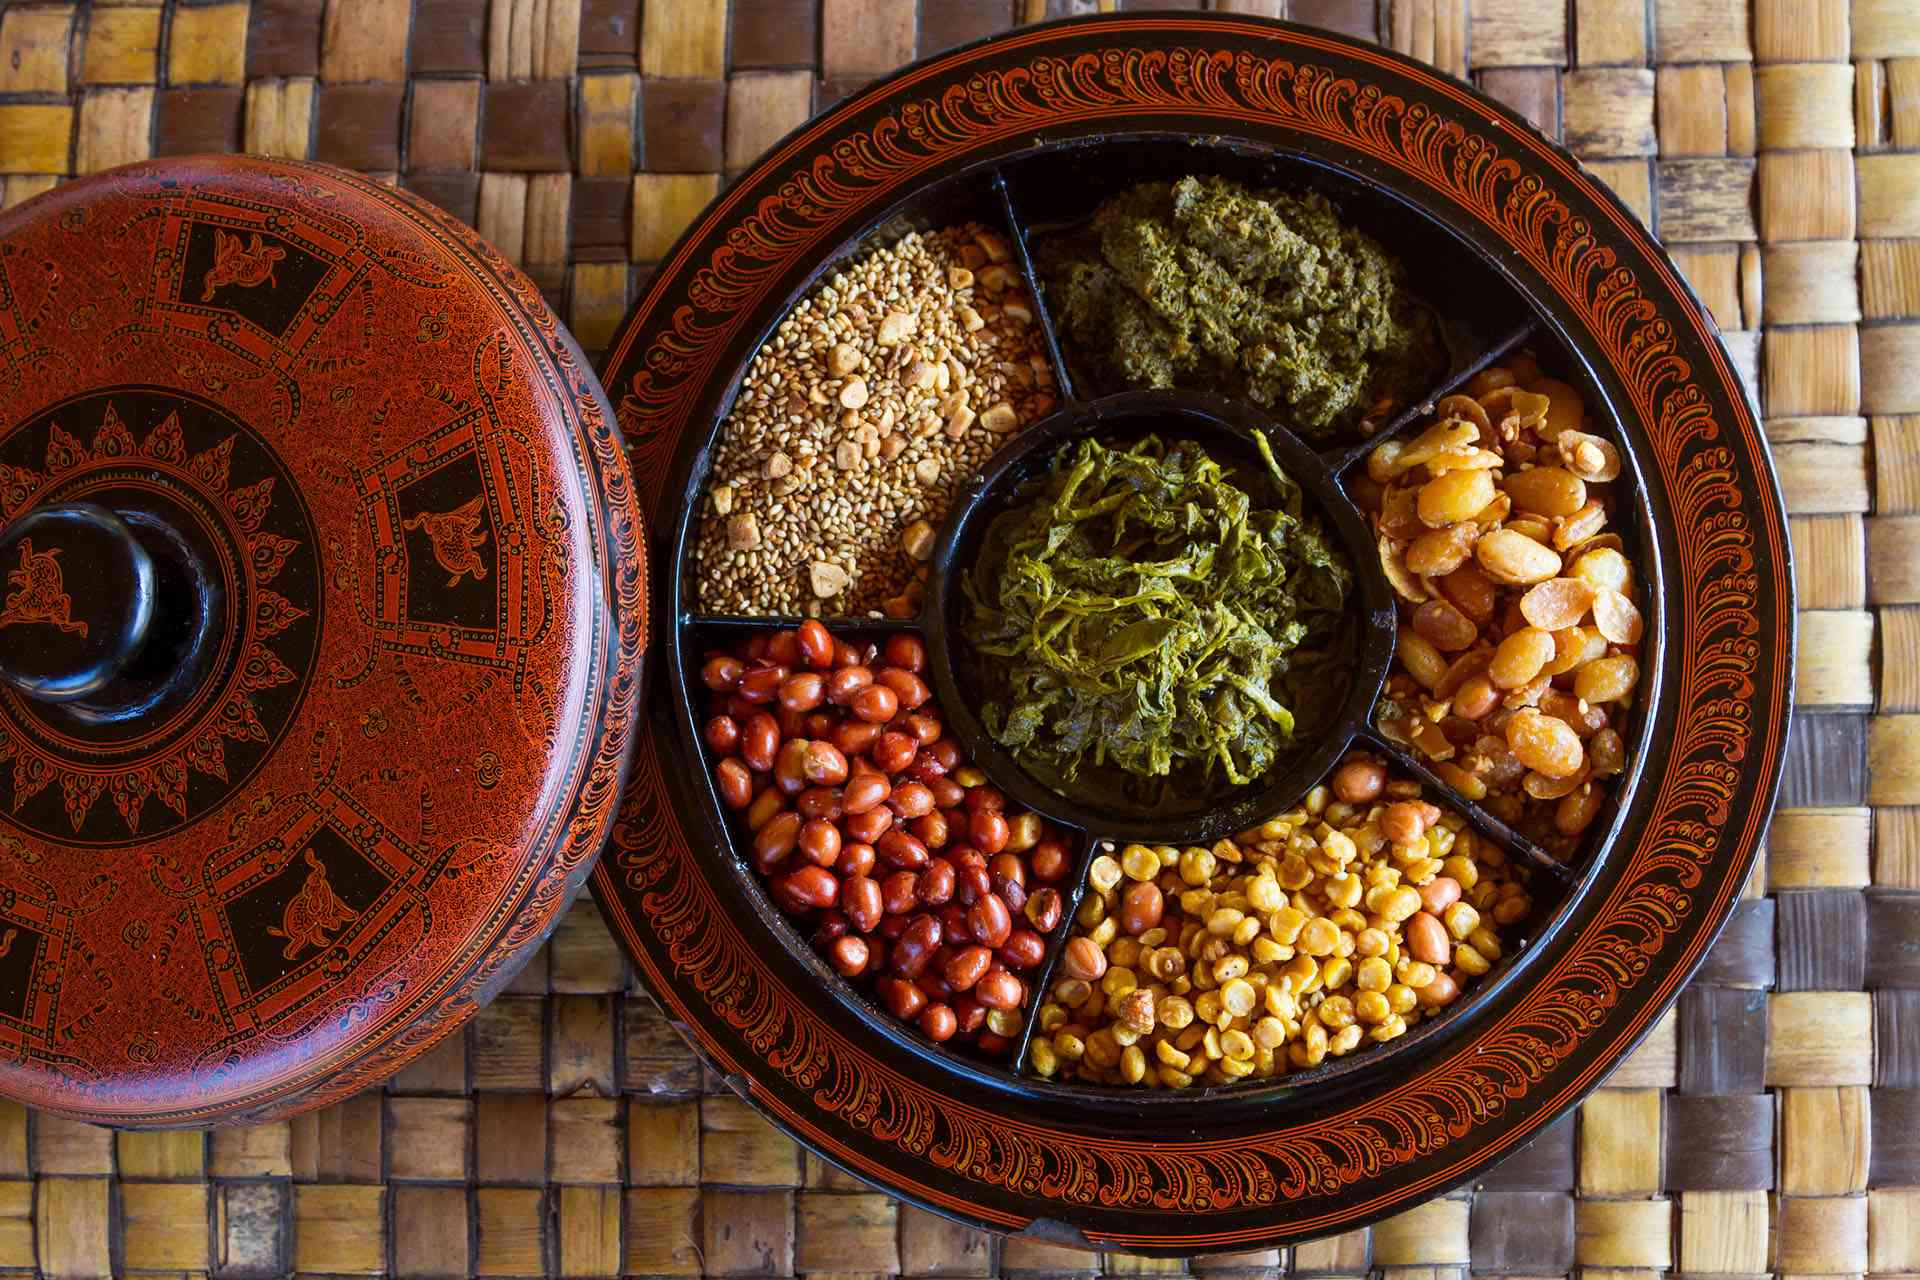 sectioned round plate with fermented tea leaves, and assorted nuts